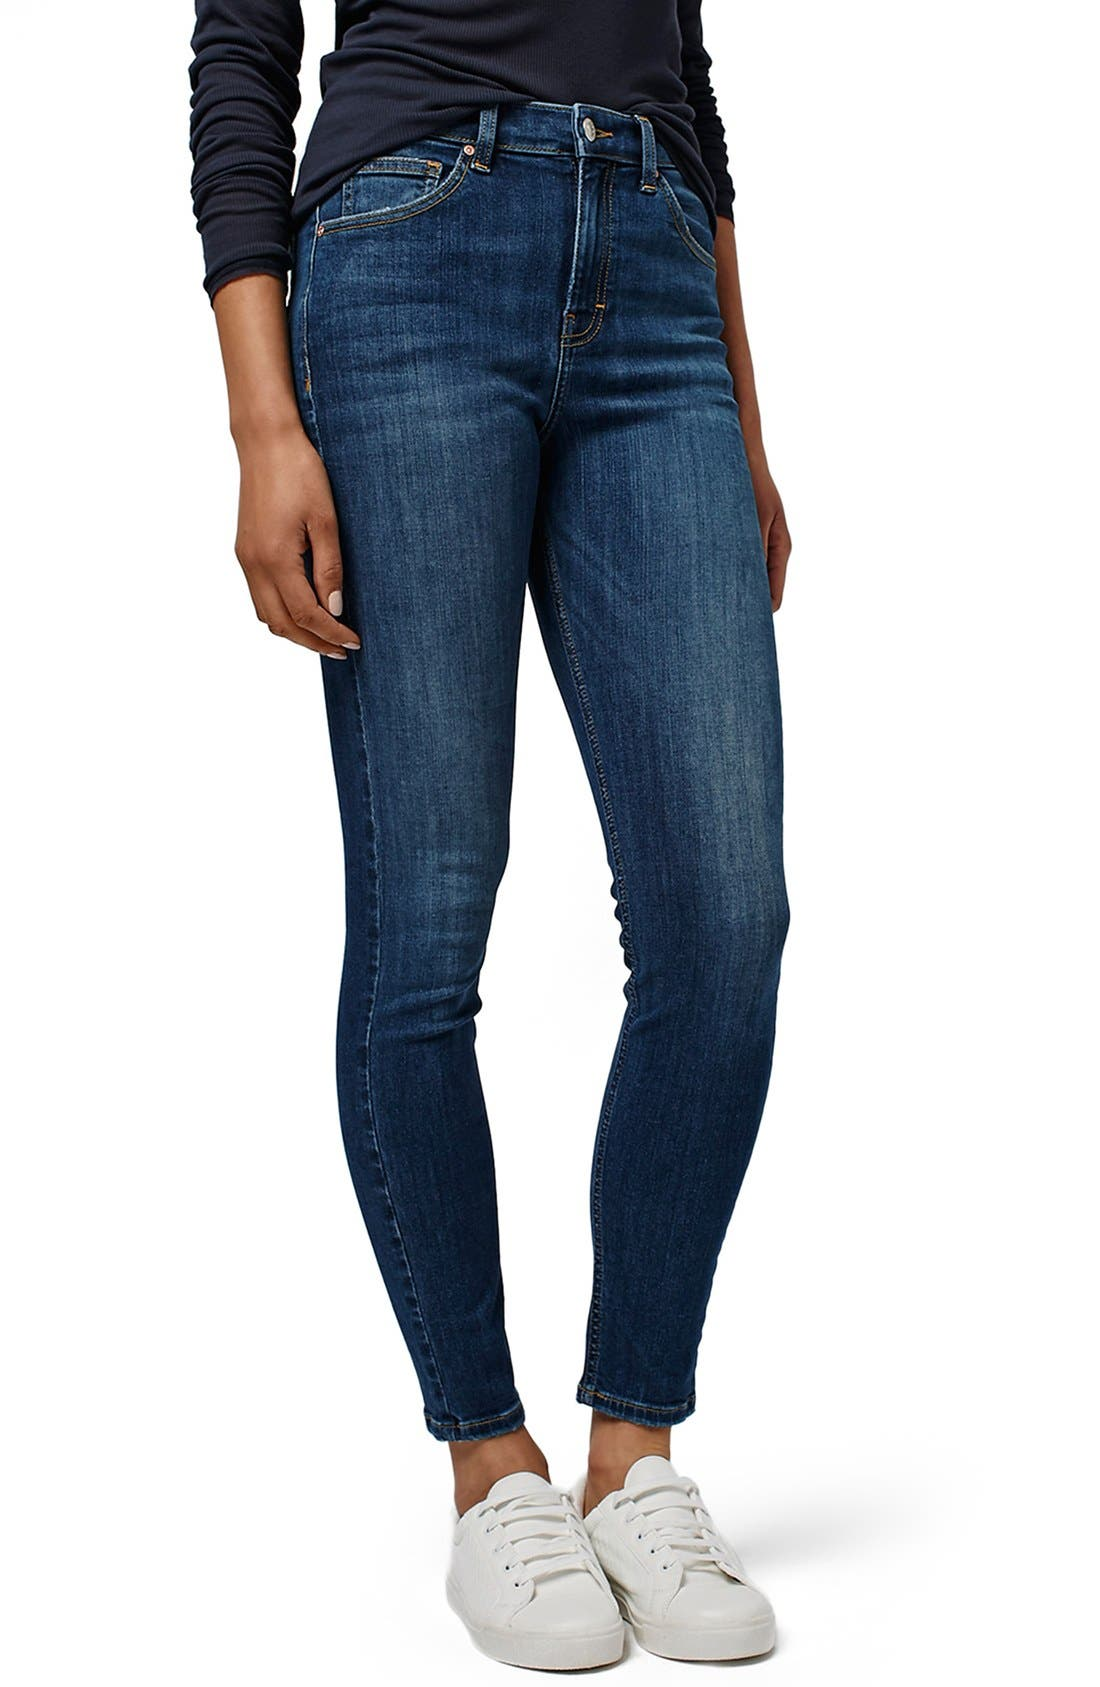 Main Image - Topshop 'Jamie' High Rise Skinny Jeans